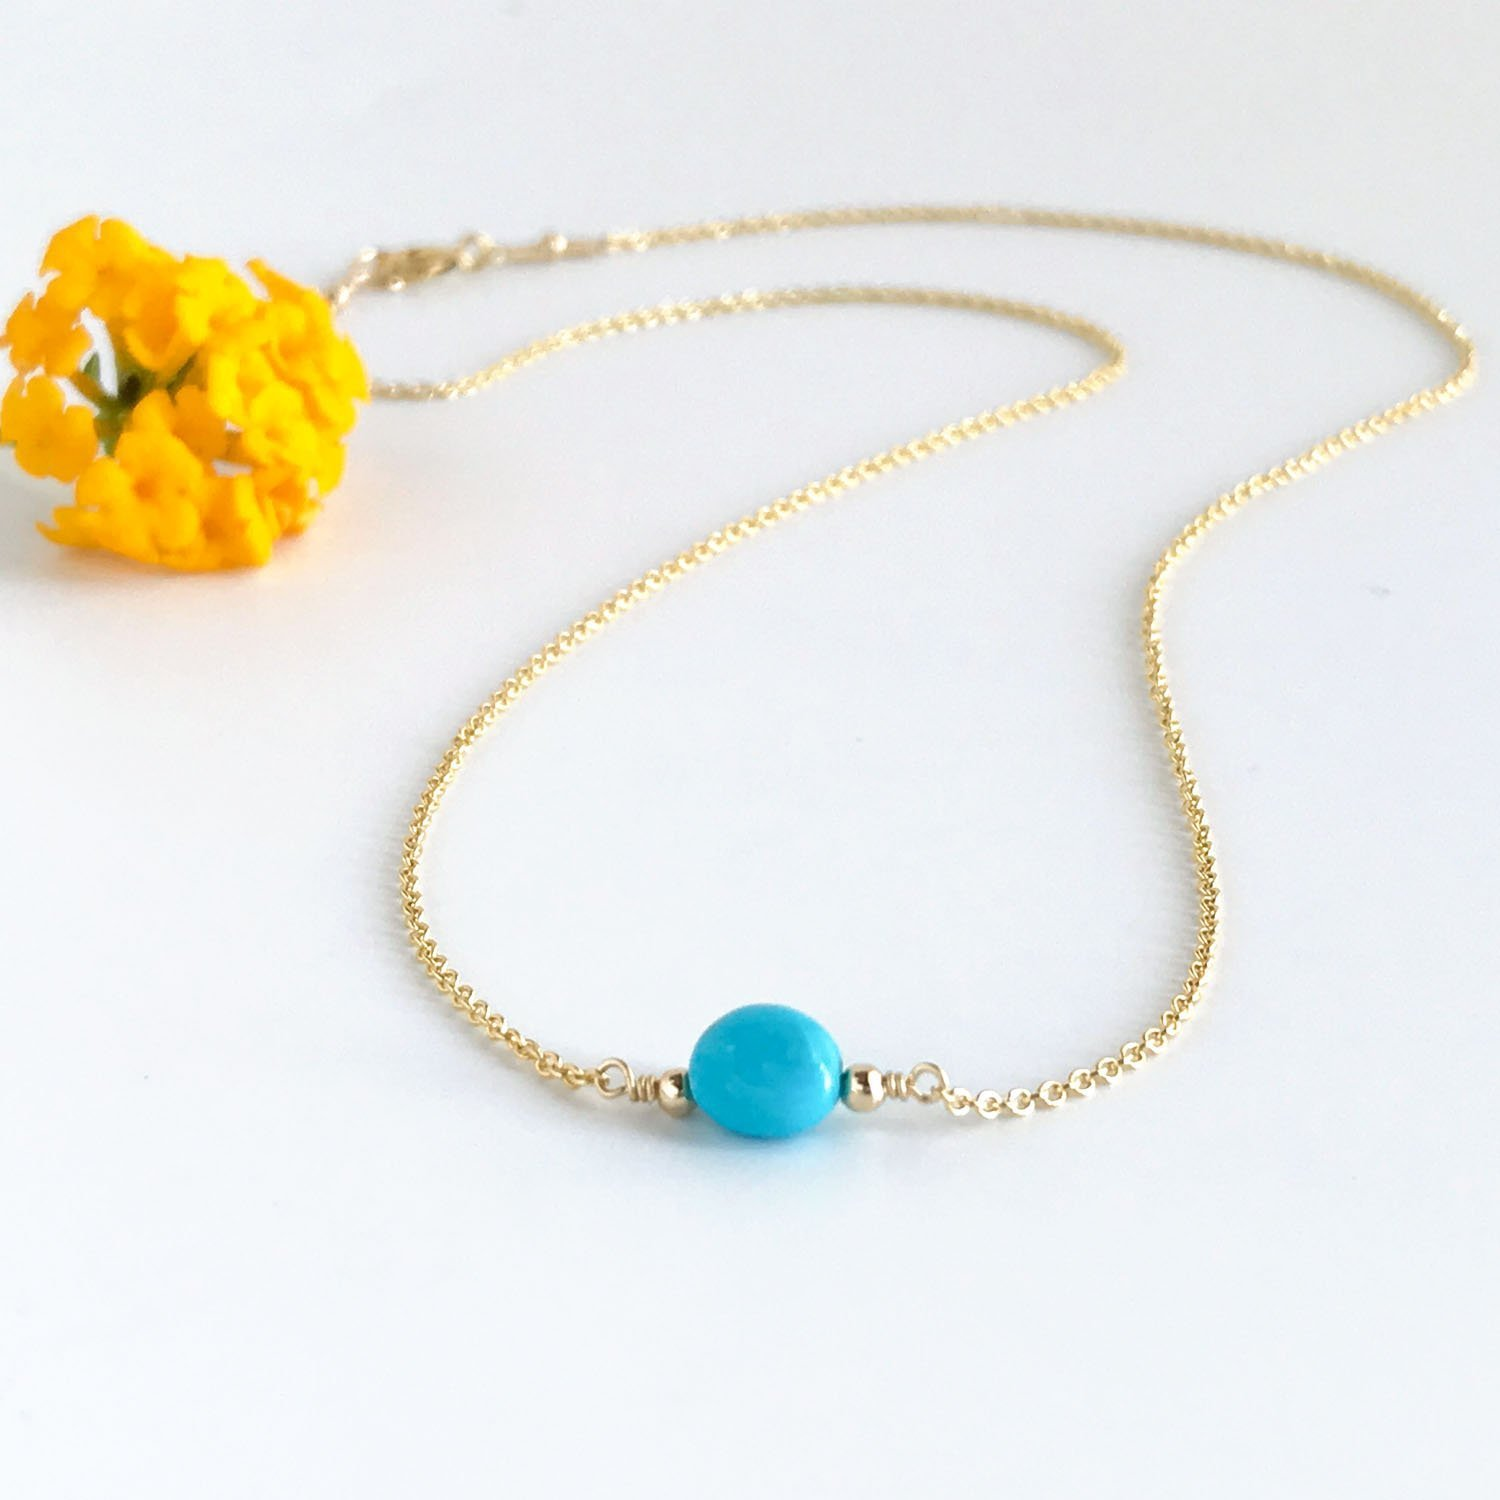 Turquoise Choker Necklace December Birthstone Dainty Gold Necklace